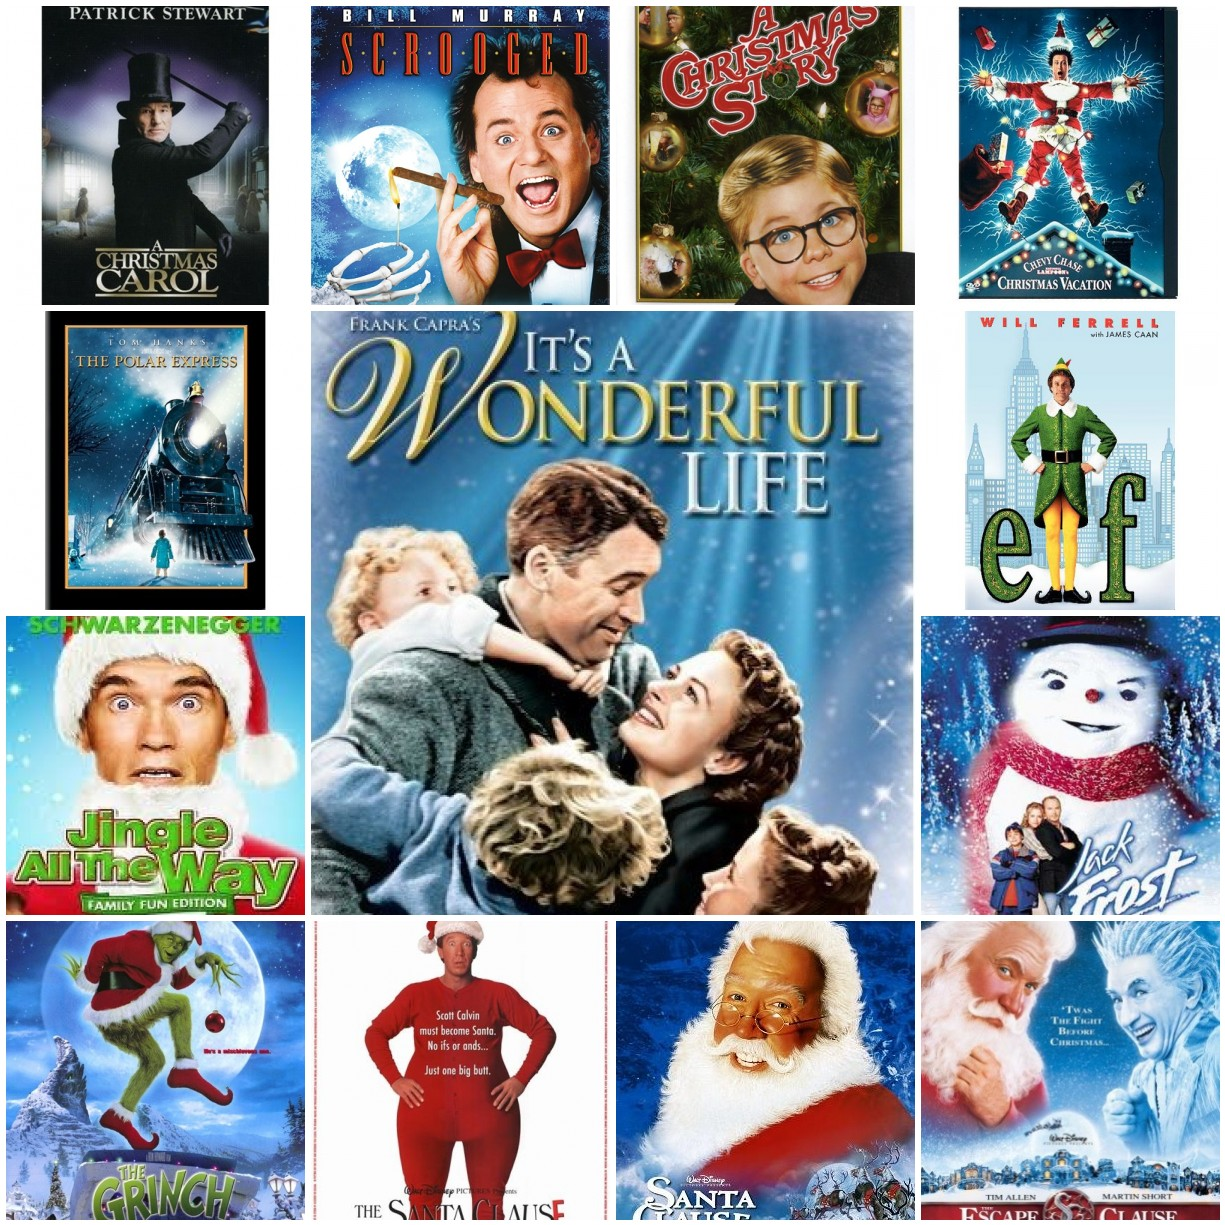 christmas movies holiday quiz favorite season which tis bing cartoon classic jim carrey target famous answers quizzes chocolate film grinch